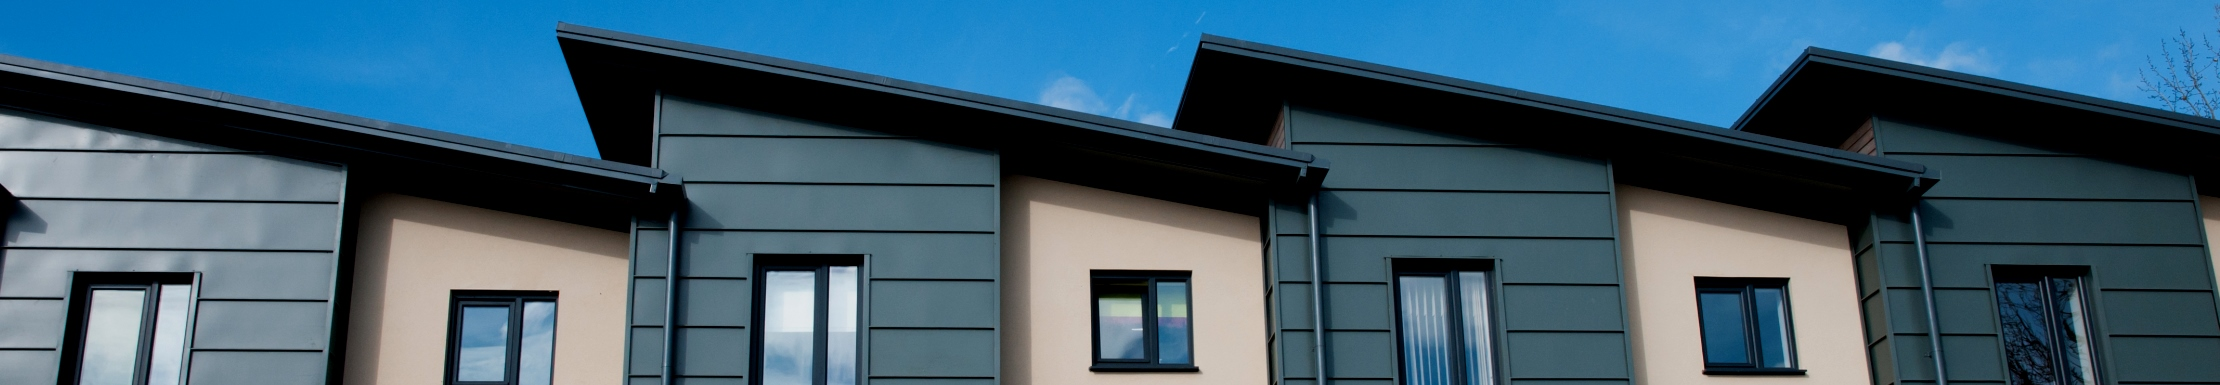 Affordable Housing Viability Assessments | Harrisons ...